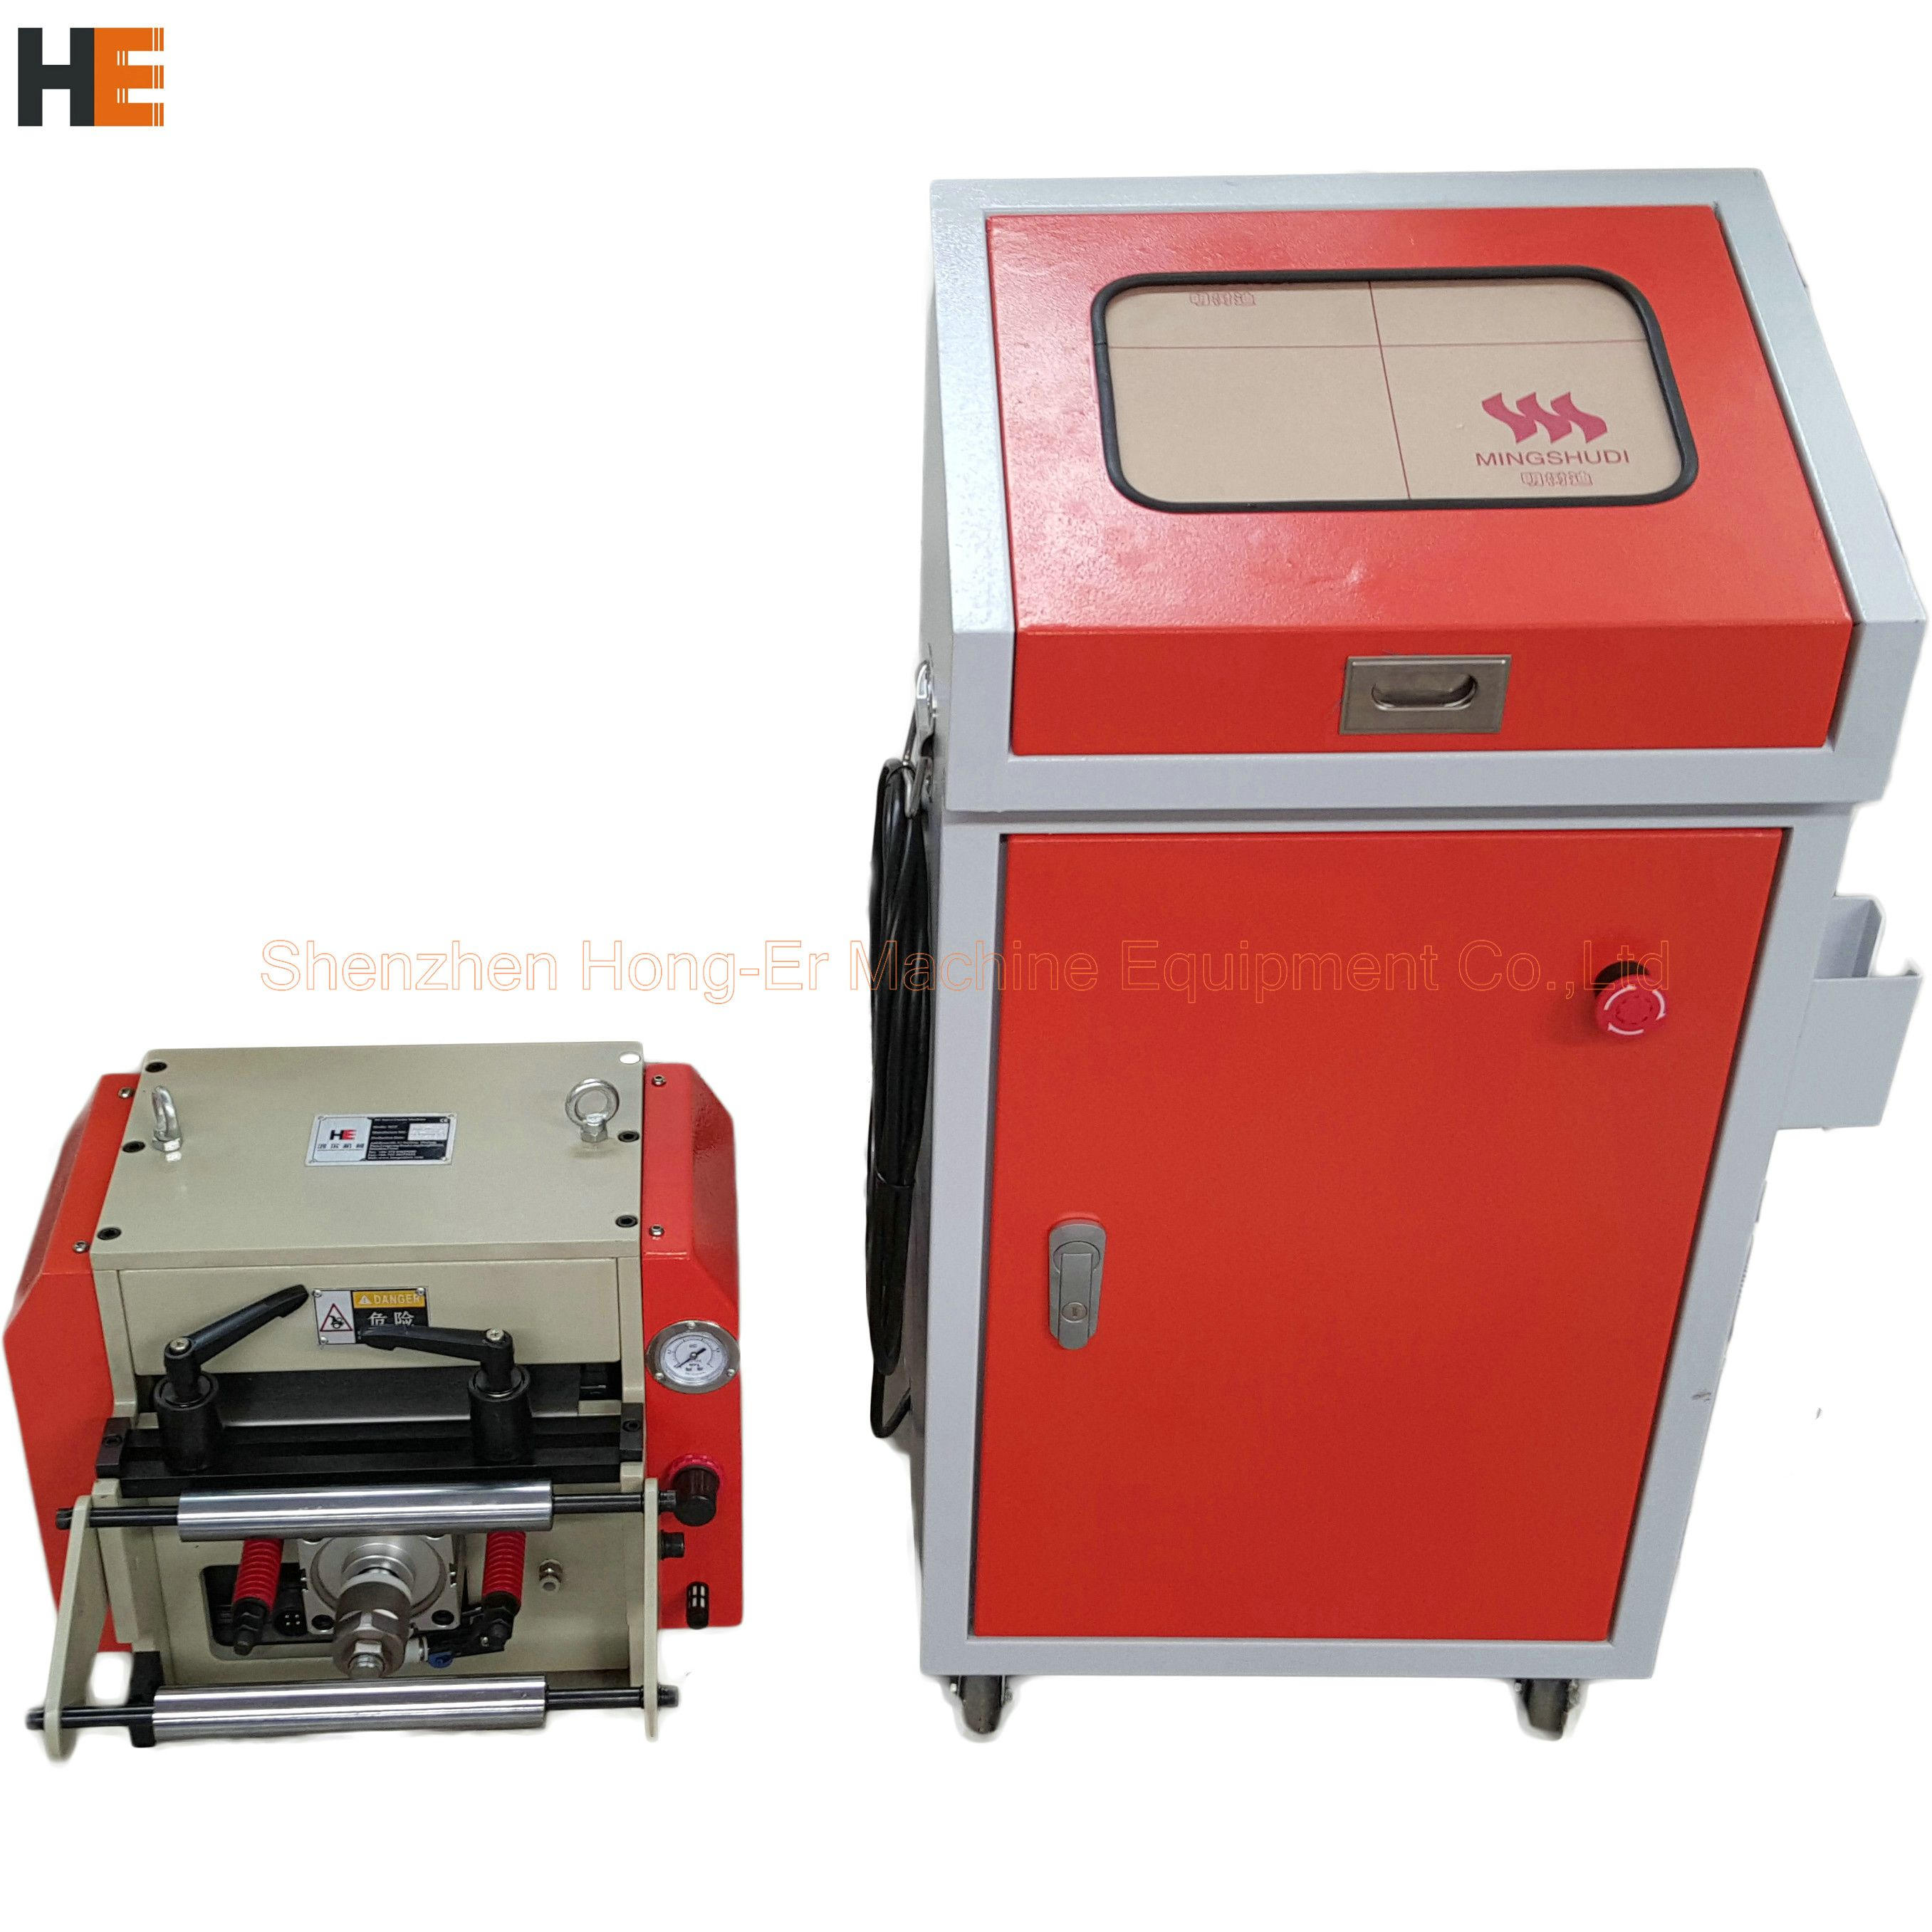 Roll Feeder,Servo Feeds,Roll Handling Equipment,Stock Feeder,NC Servo Roll Feeder,NC Servo Feeder,NC Feeder,Servo Roll Feeder,Servo Feeder,NC Feeder,Servo Roll Feeder,Metal coil handling,China NC Servo Roll Feeder,Automatic NC Servo Roll Feeder Machine  #industrialdesign #industrialmachinery #sheetmetalworkers #precisionmetalworking #sheetmetalstamping #mechanicalengineer #engineeringindustries #electricandelectronics